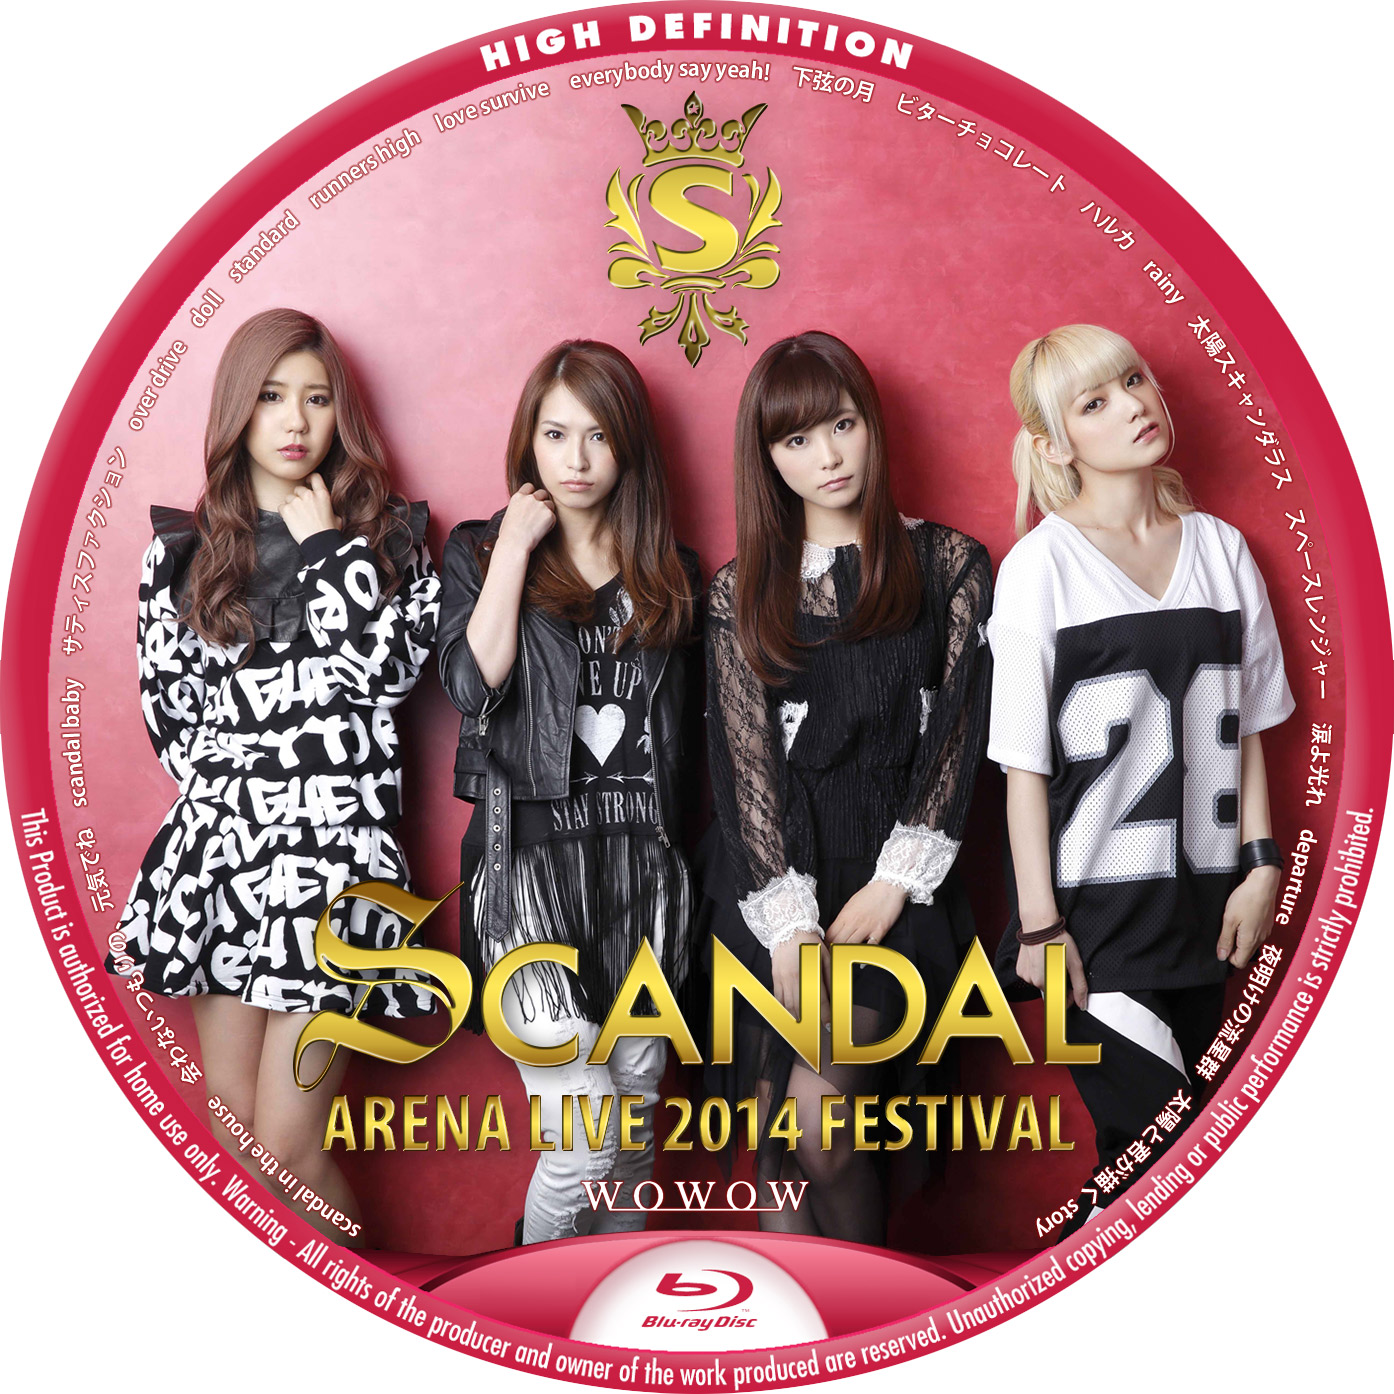 SCANDAL AREANA LIVE 2014 BD Blu-lay ラベル WOWOW